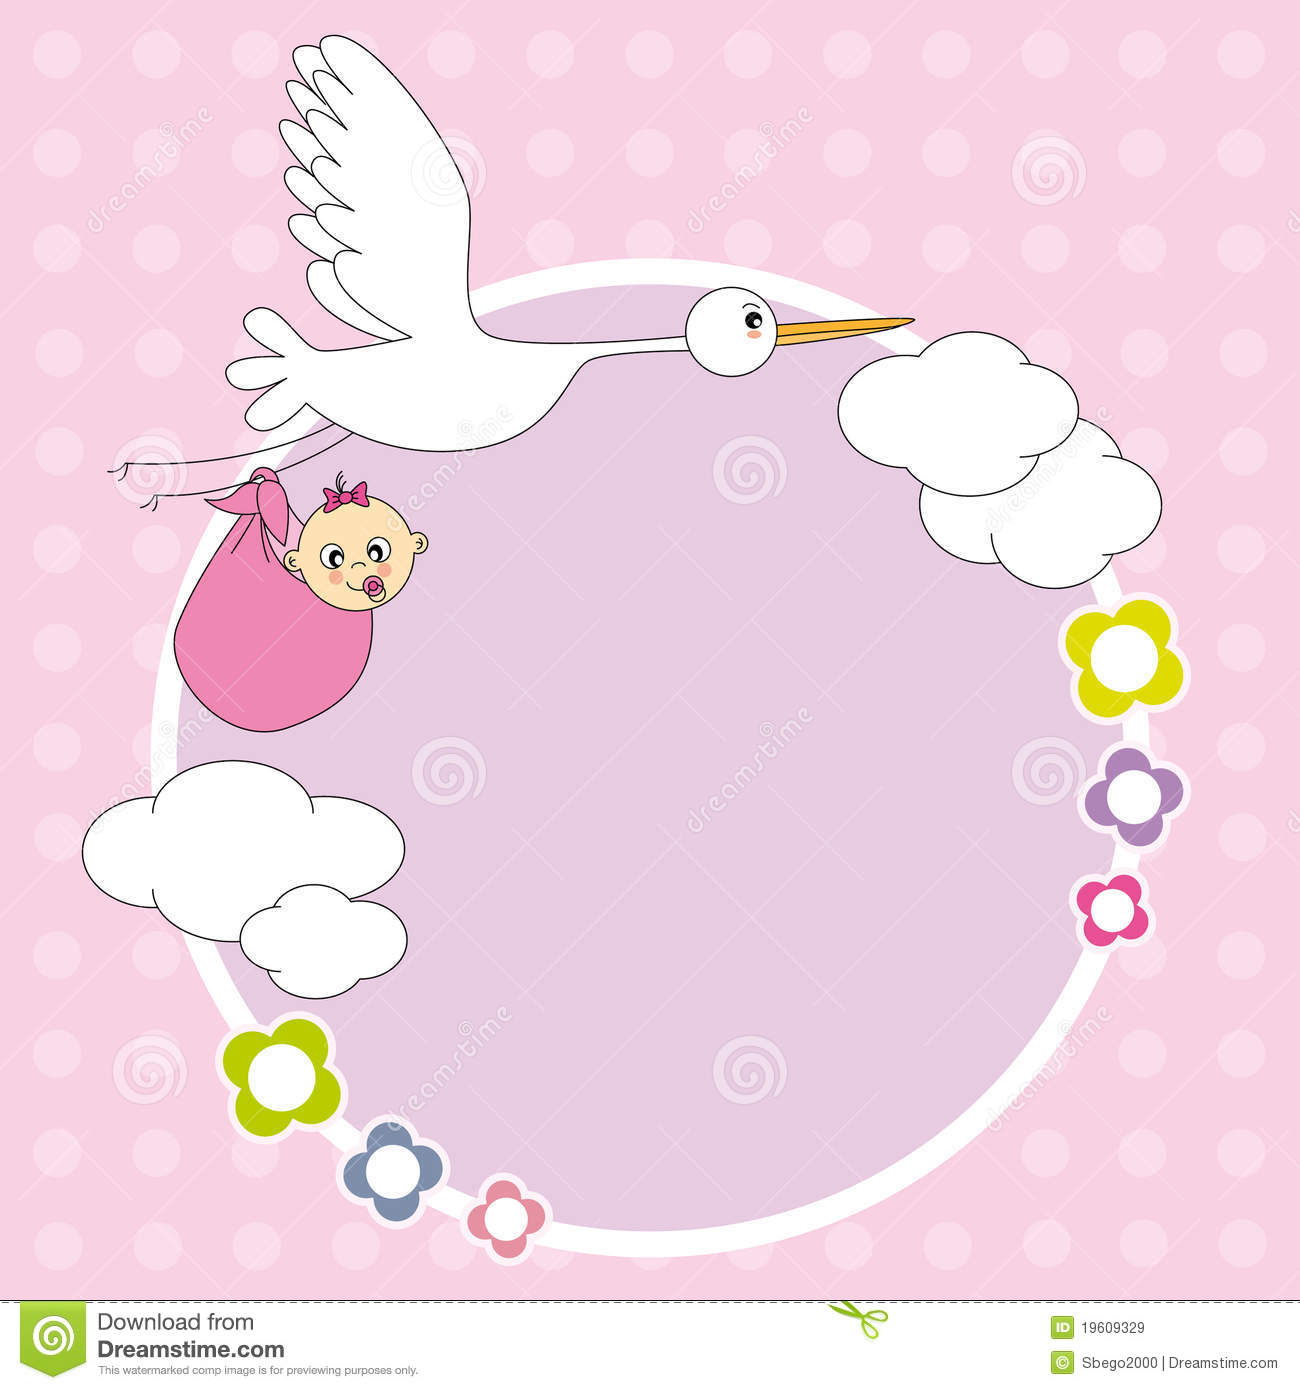 Cute Baby Girl Wallpaper Full Hd Frame Baby Girl Stock Vector Illustration Of Tender